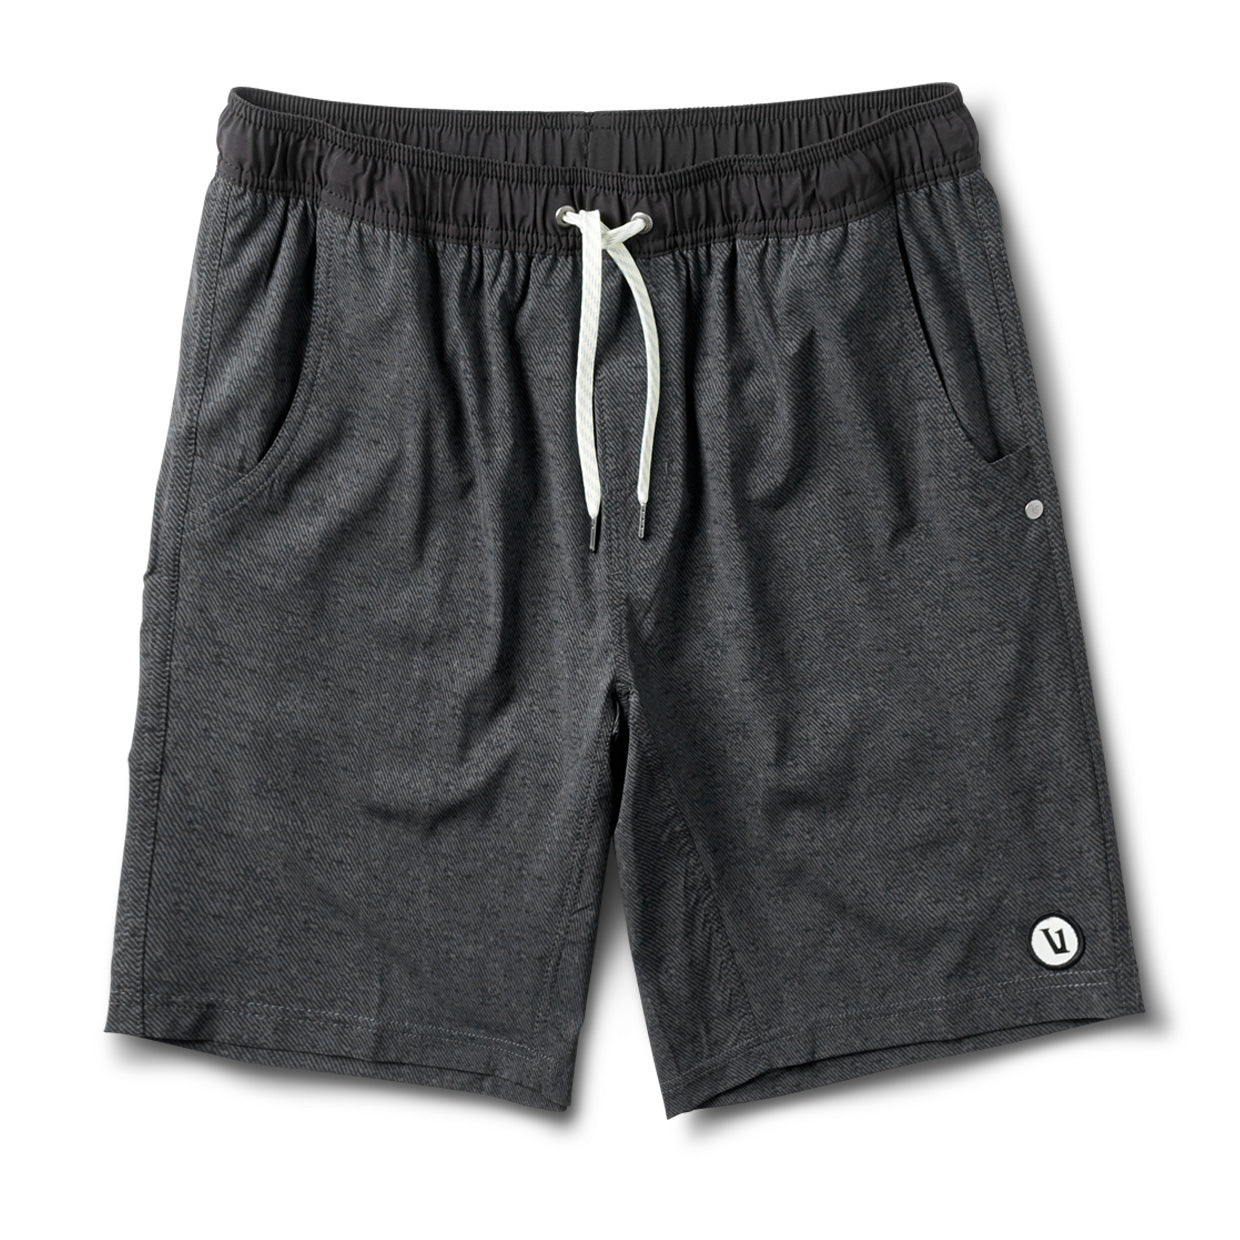 Kore Short | Charcoal Twill Texture